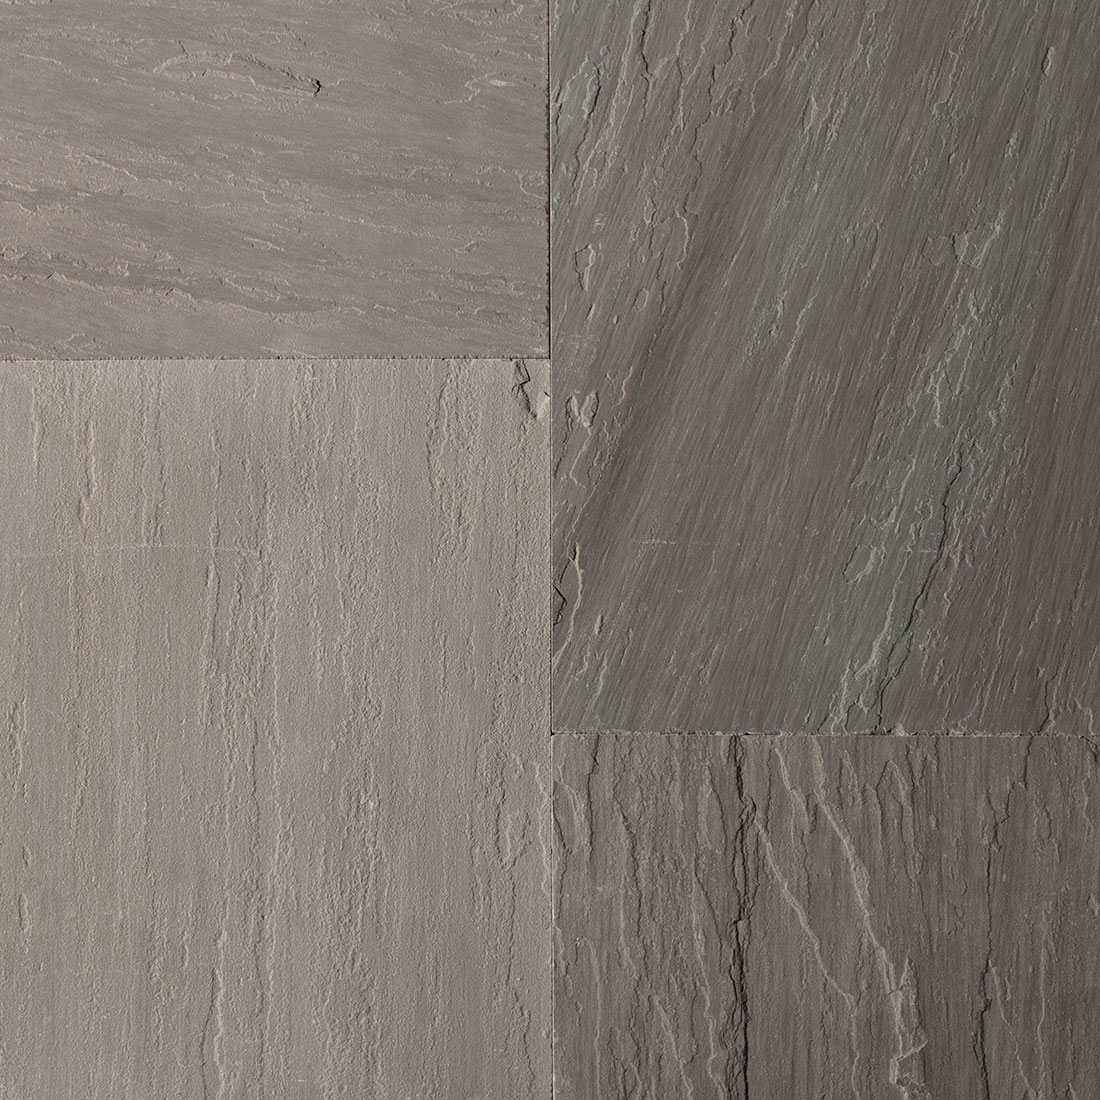 India Slate Grey square cut flagstone paver swatch